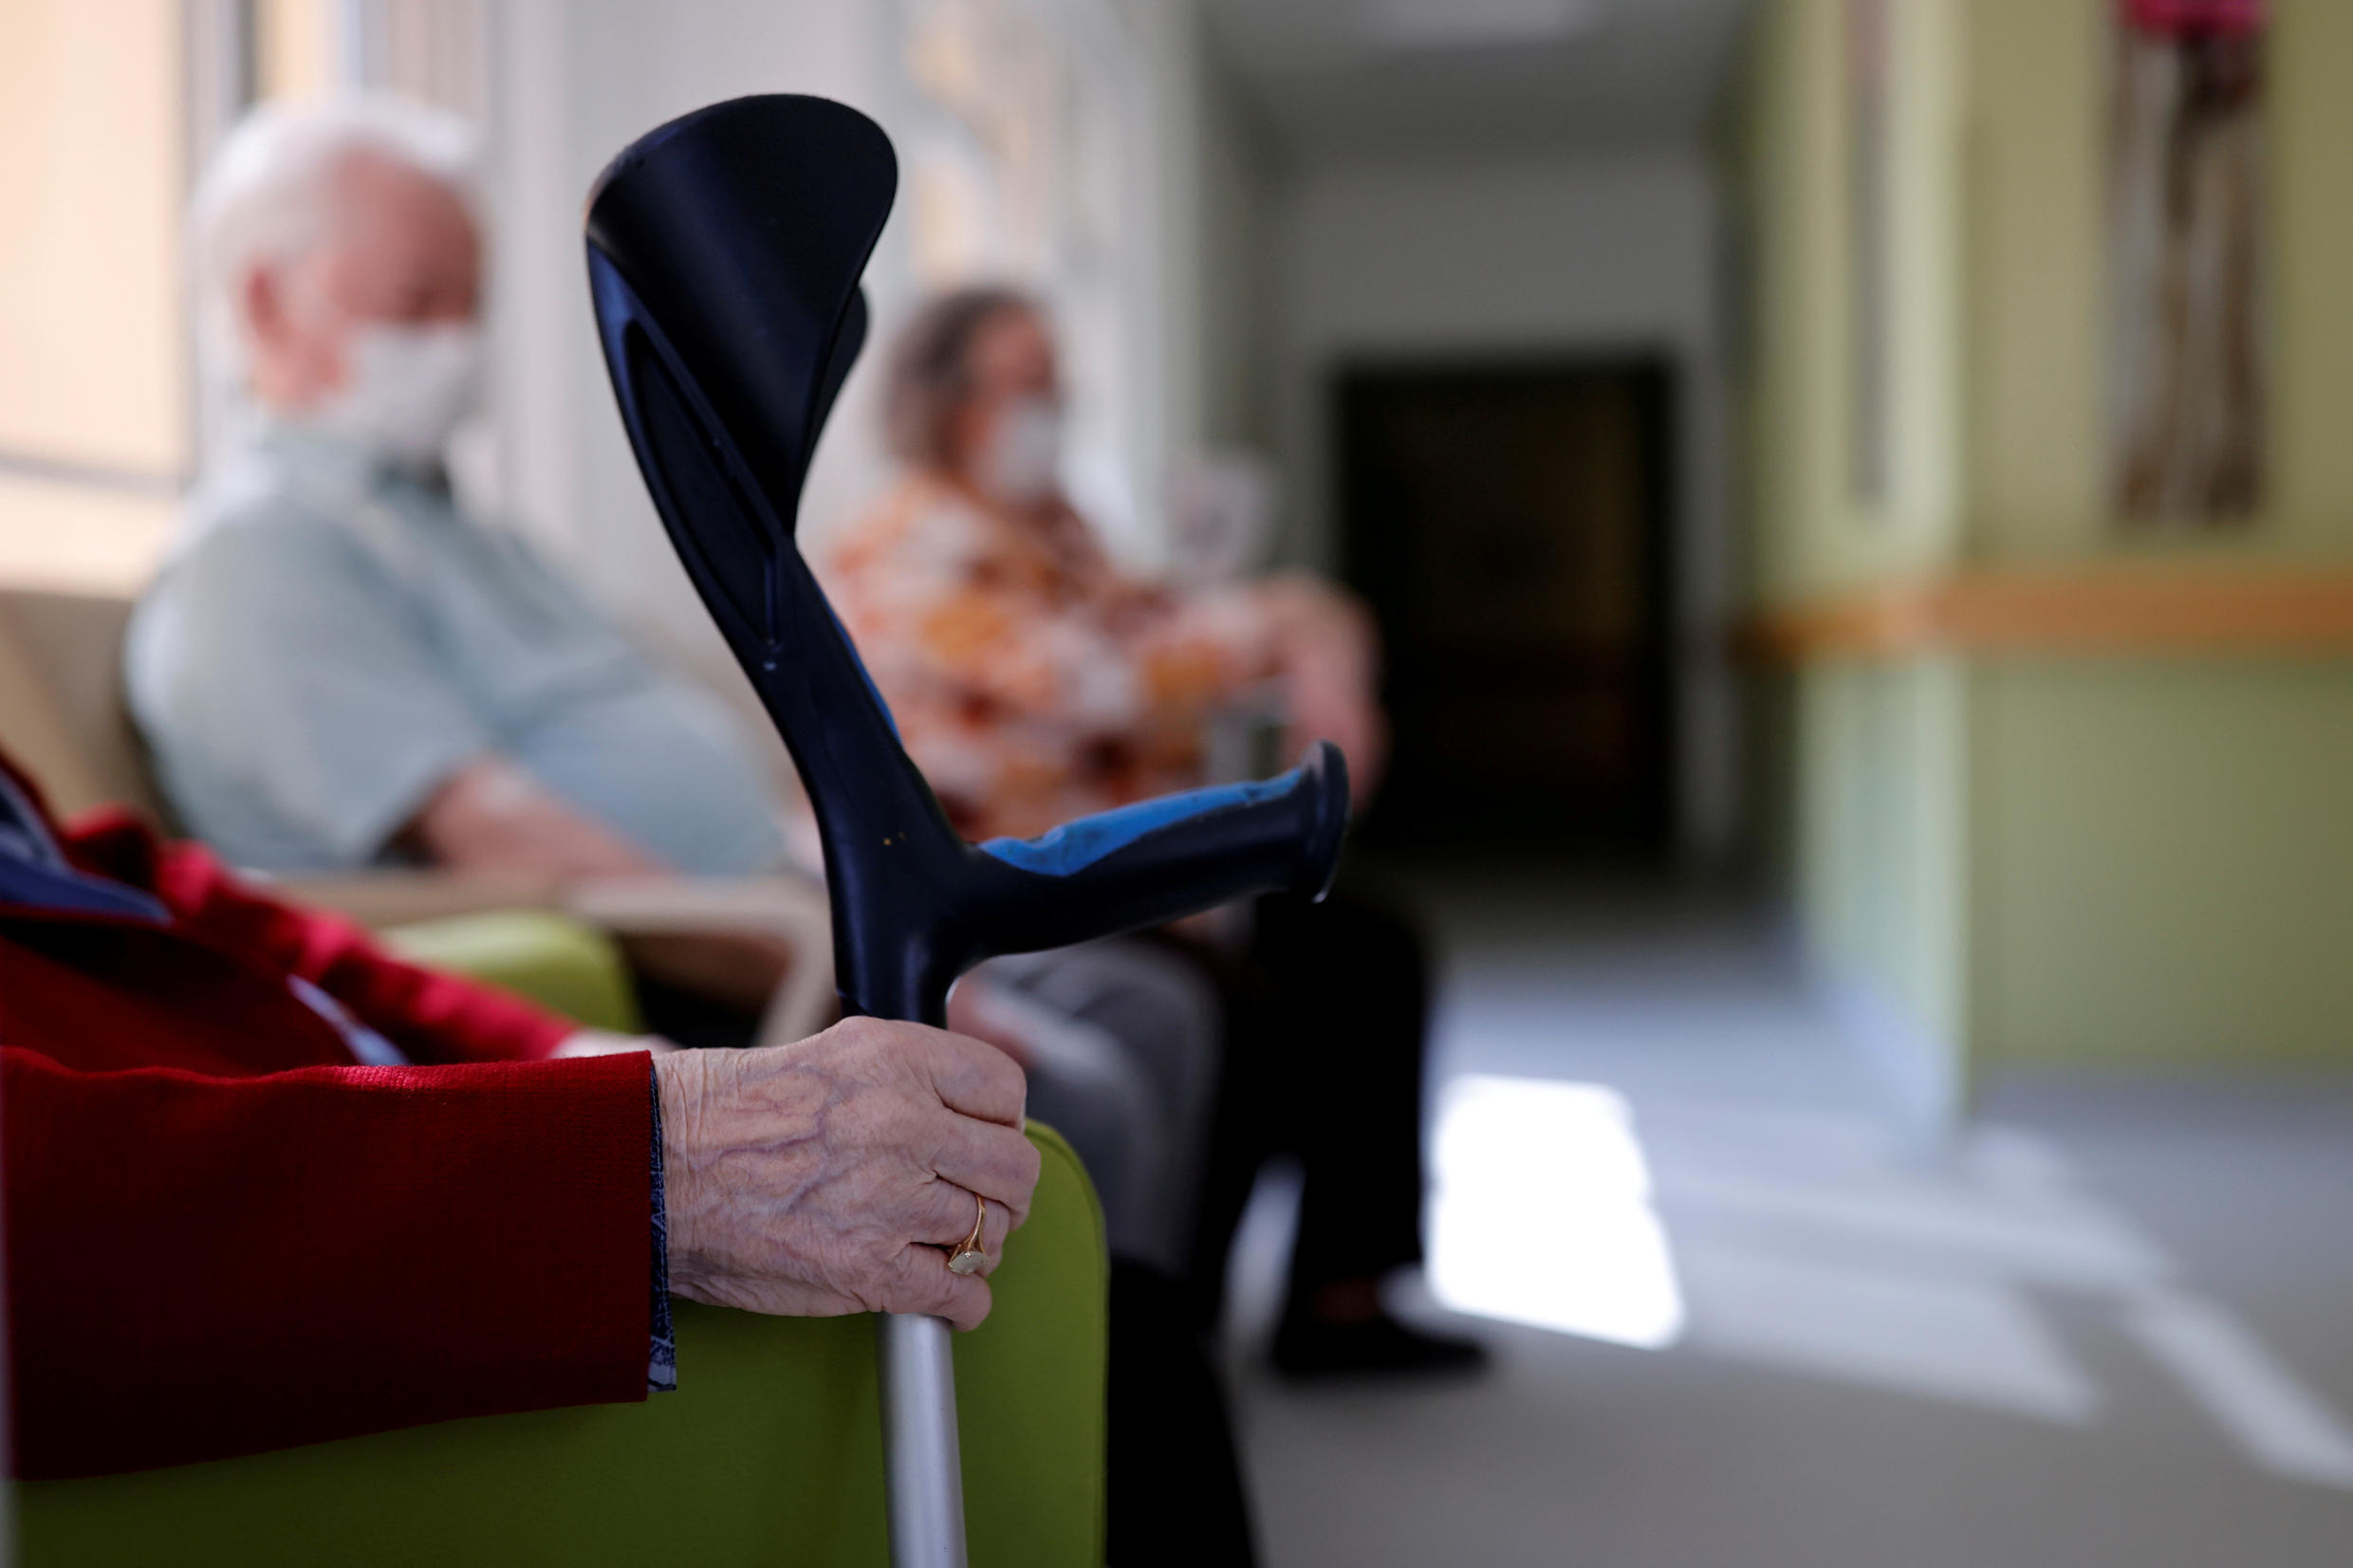 Residents are seen at the La Weiss retirement home (EHPAD - Housing Establishment for Dependant Elderly People) in Kaysersberg, as the spread of the coronavirus disease (COVID-19) continues in France, April 16, 2020. Picture taken April 16, 2020.